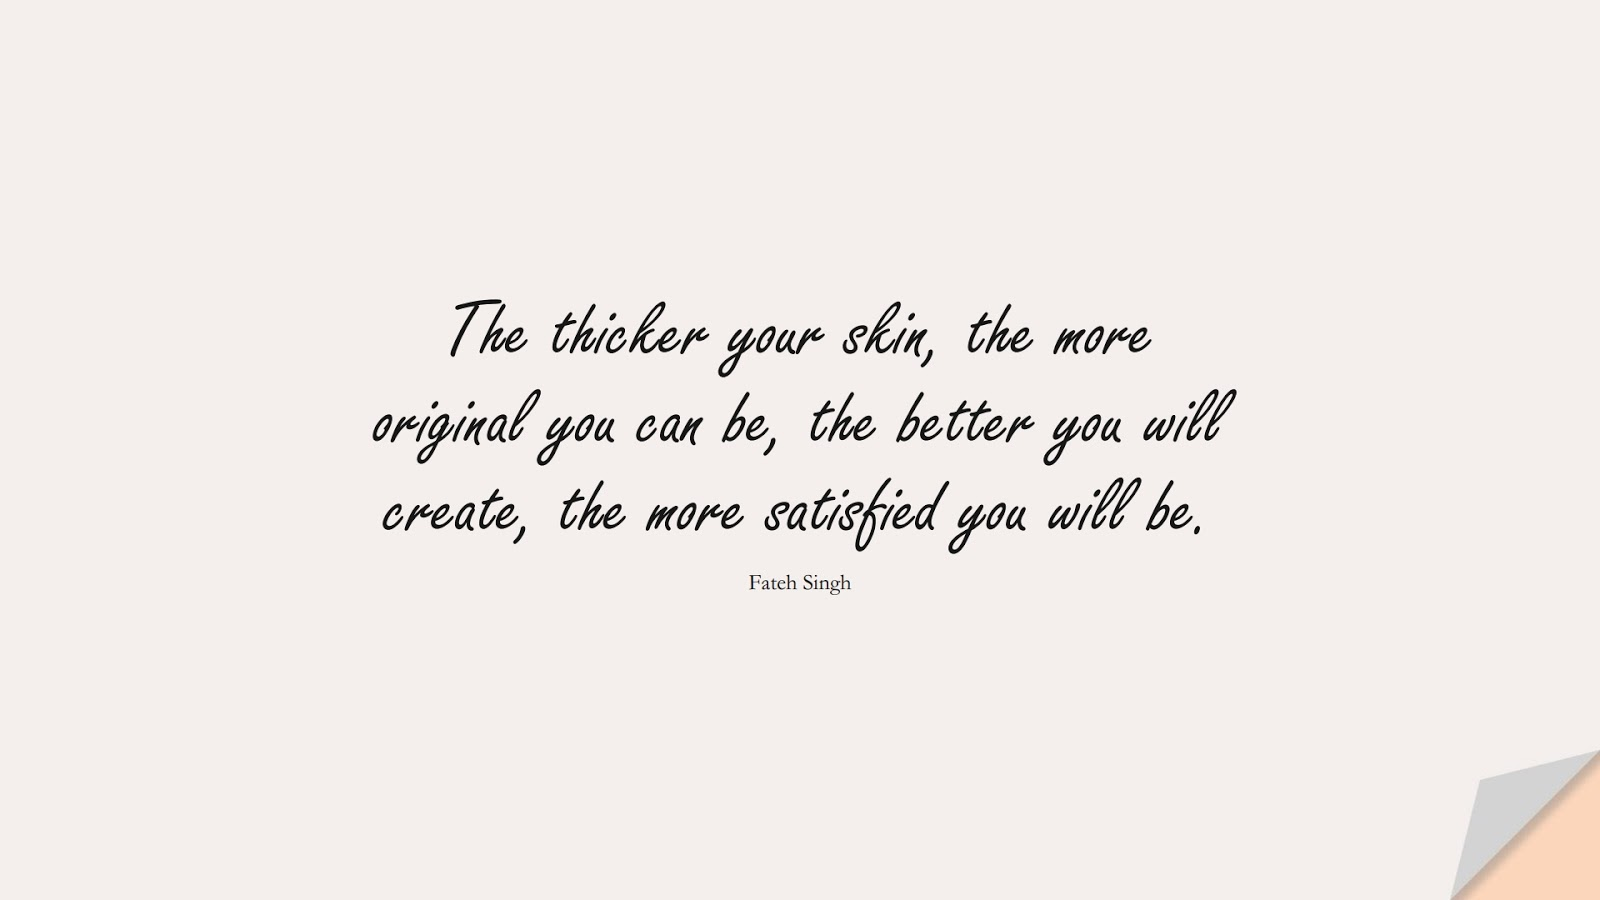 The thicker your skin, the more original you can be, the better you will create, the more satisfied you will be. (Fateh Singh);  #BeYourselfQuotes